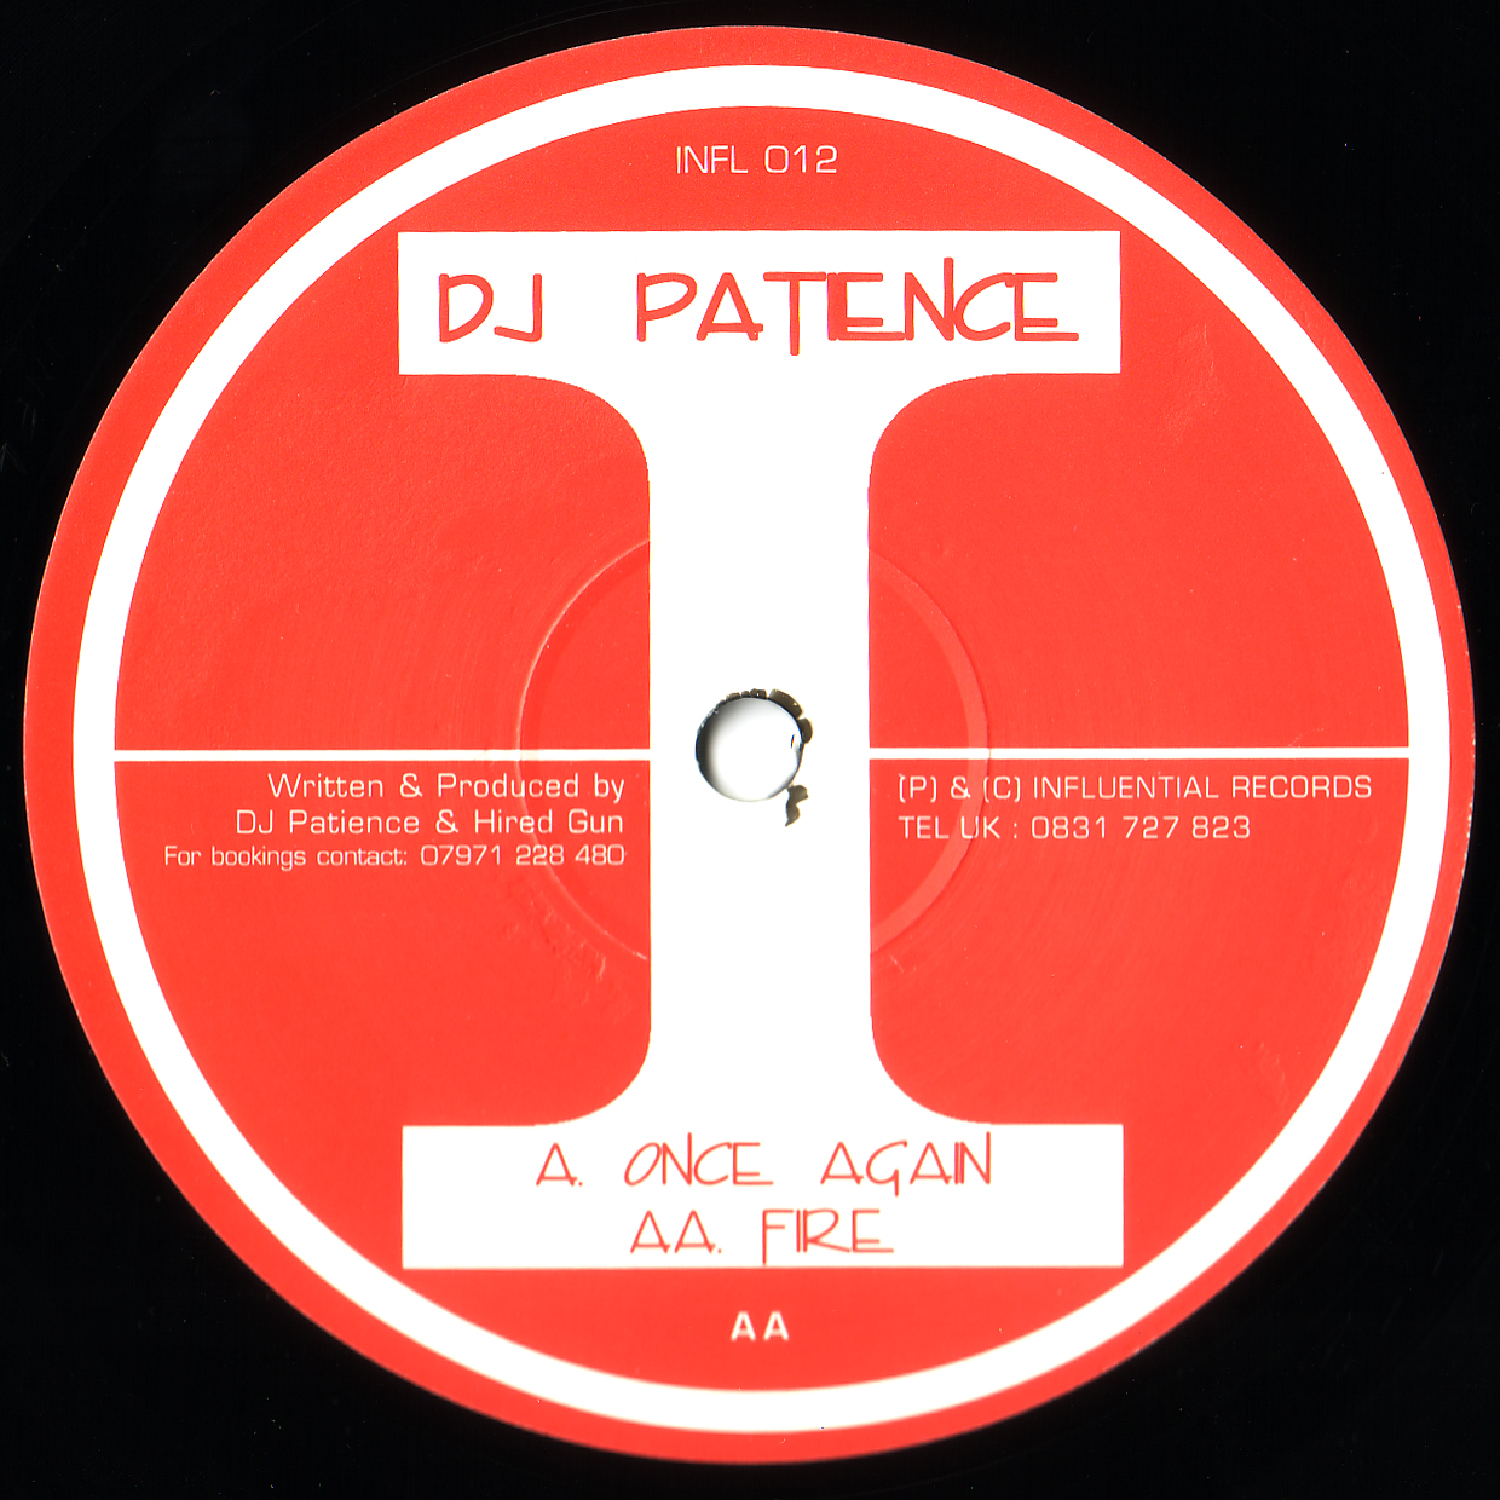 [INFL012] Dj Patience - Once Again EP (Digital Only)